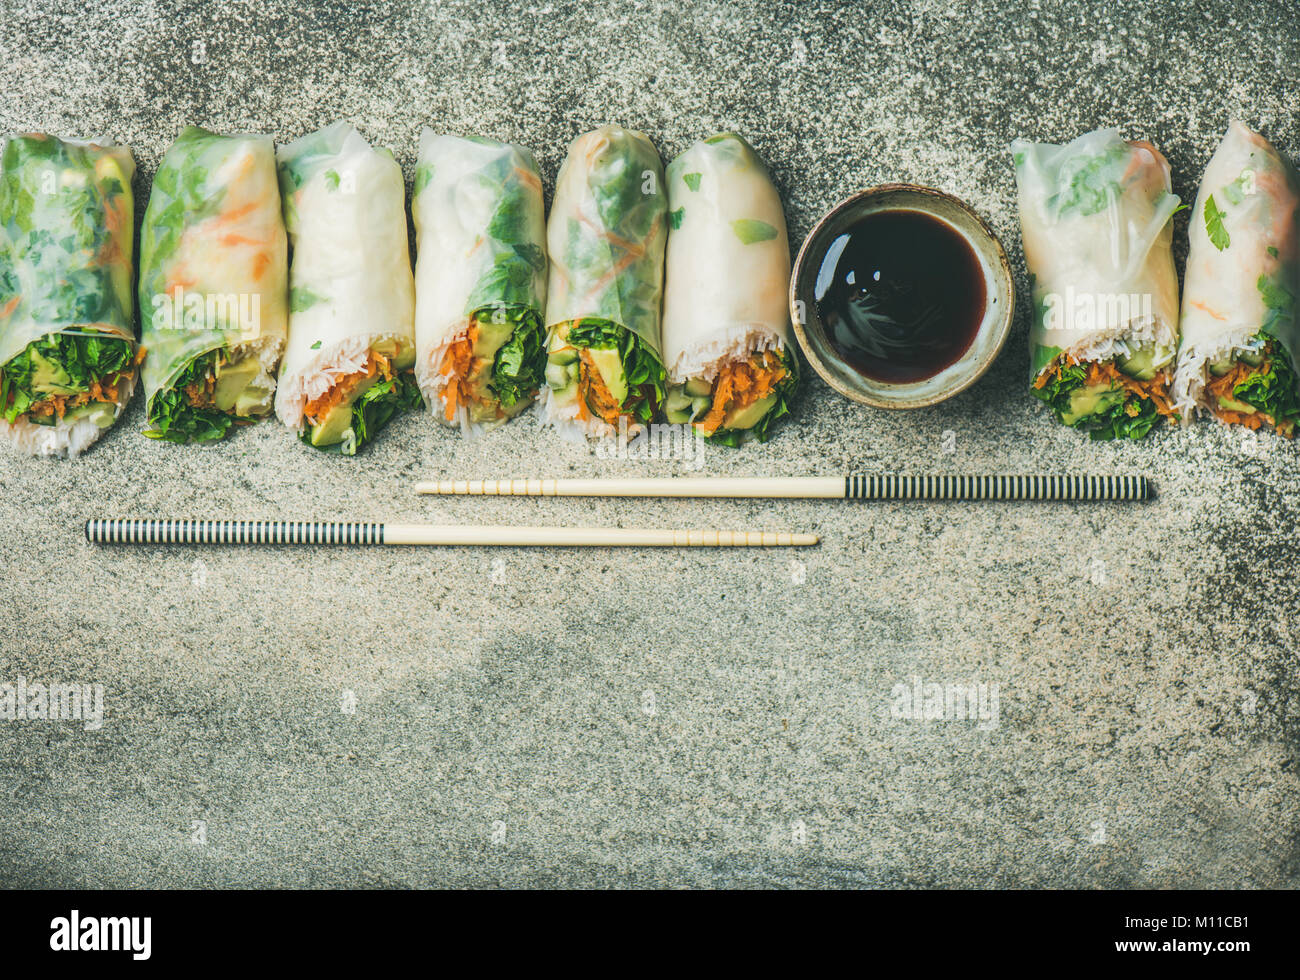 Helathy Asian cuisine. Flat-lay of vegan spring or summer rice paper rolls with vegetables, sauce and chopsticks - Stock Image